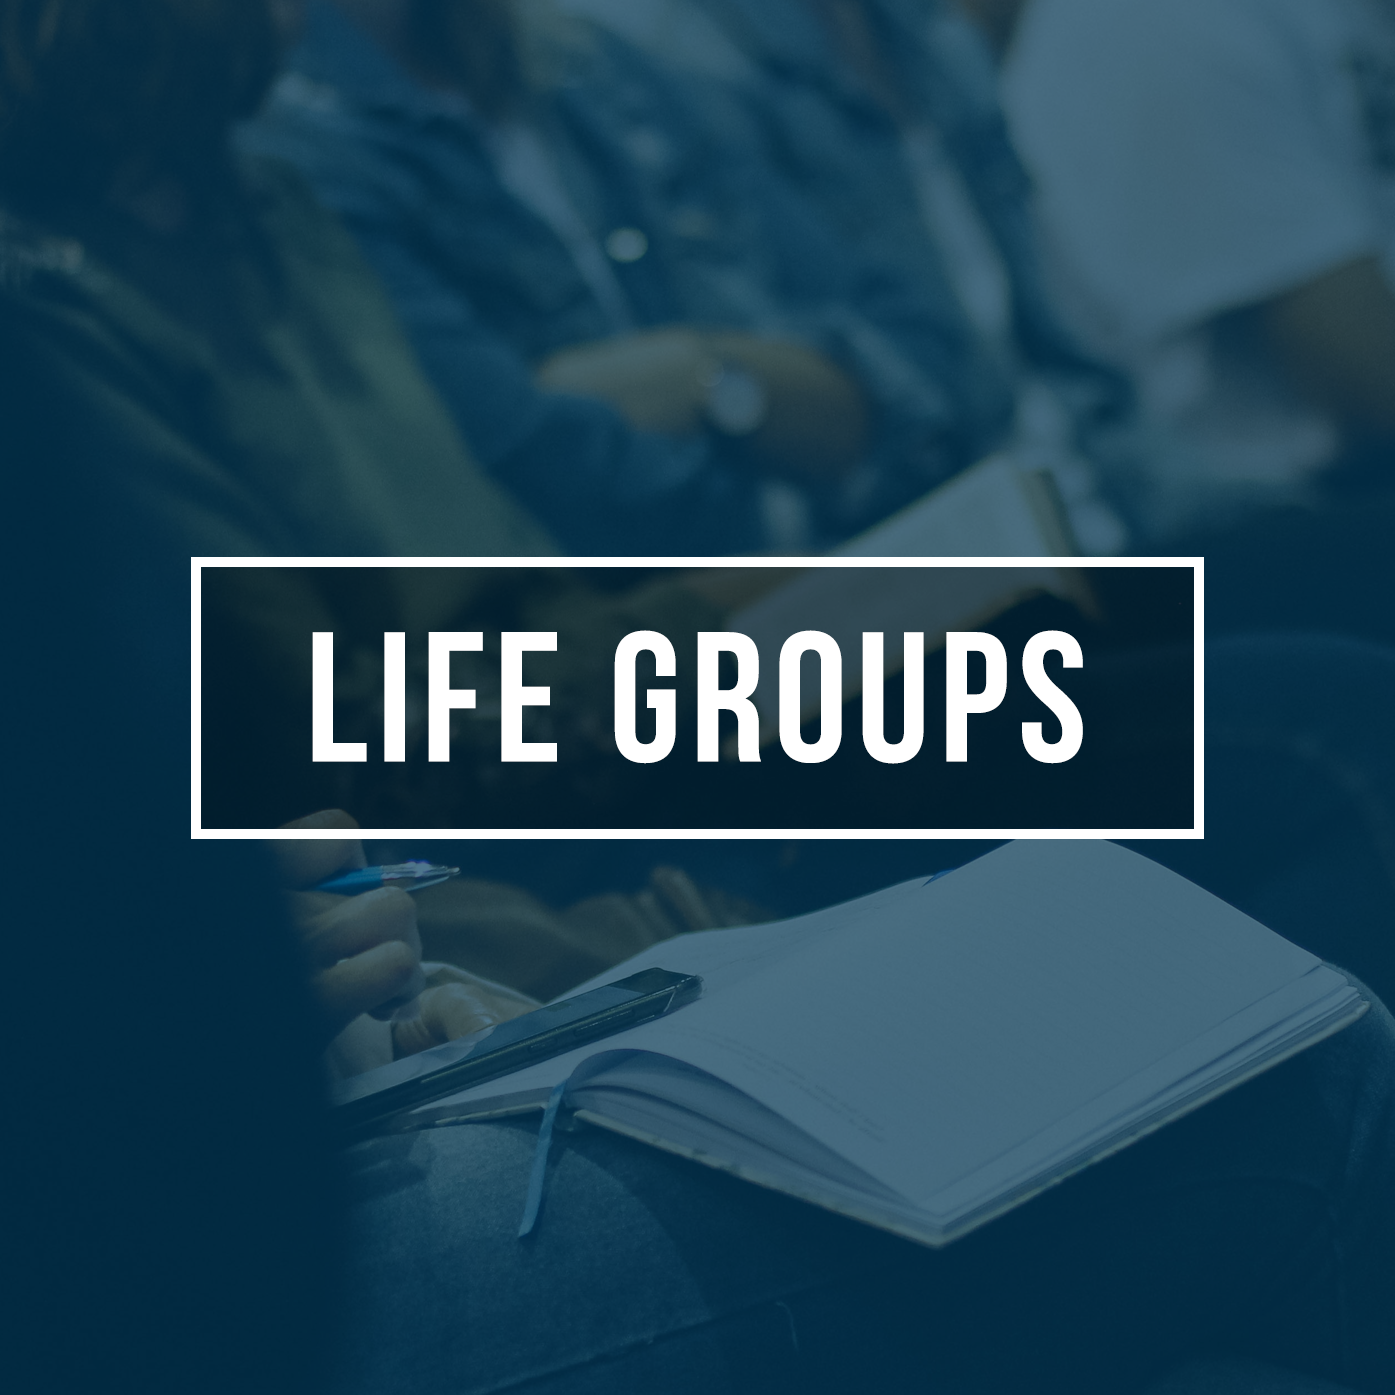 Life Groups - You were created on purpose, with a purpose, for a purpose. No matter where you are in life, we have a group for you.